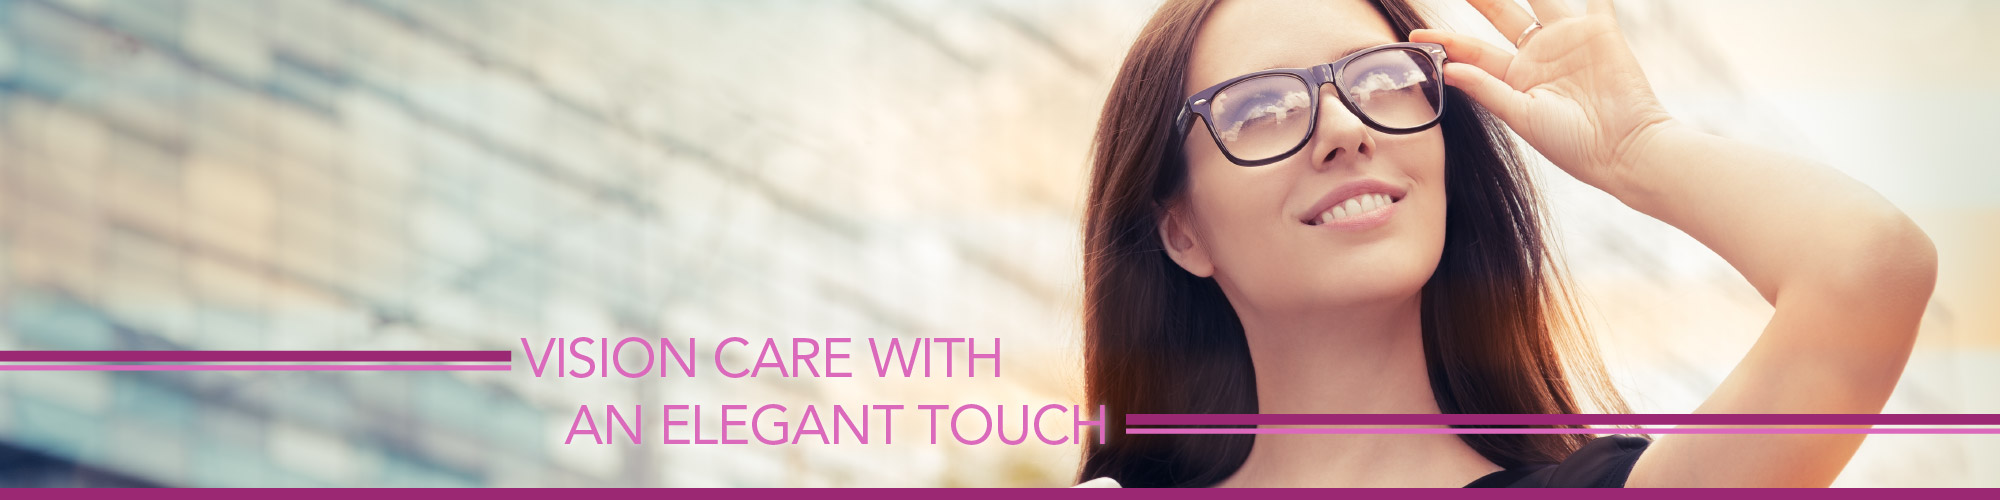 Vision Care with an Elegant Touch | woman with glasses